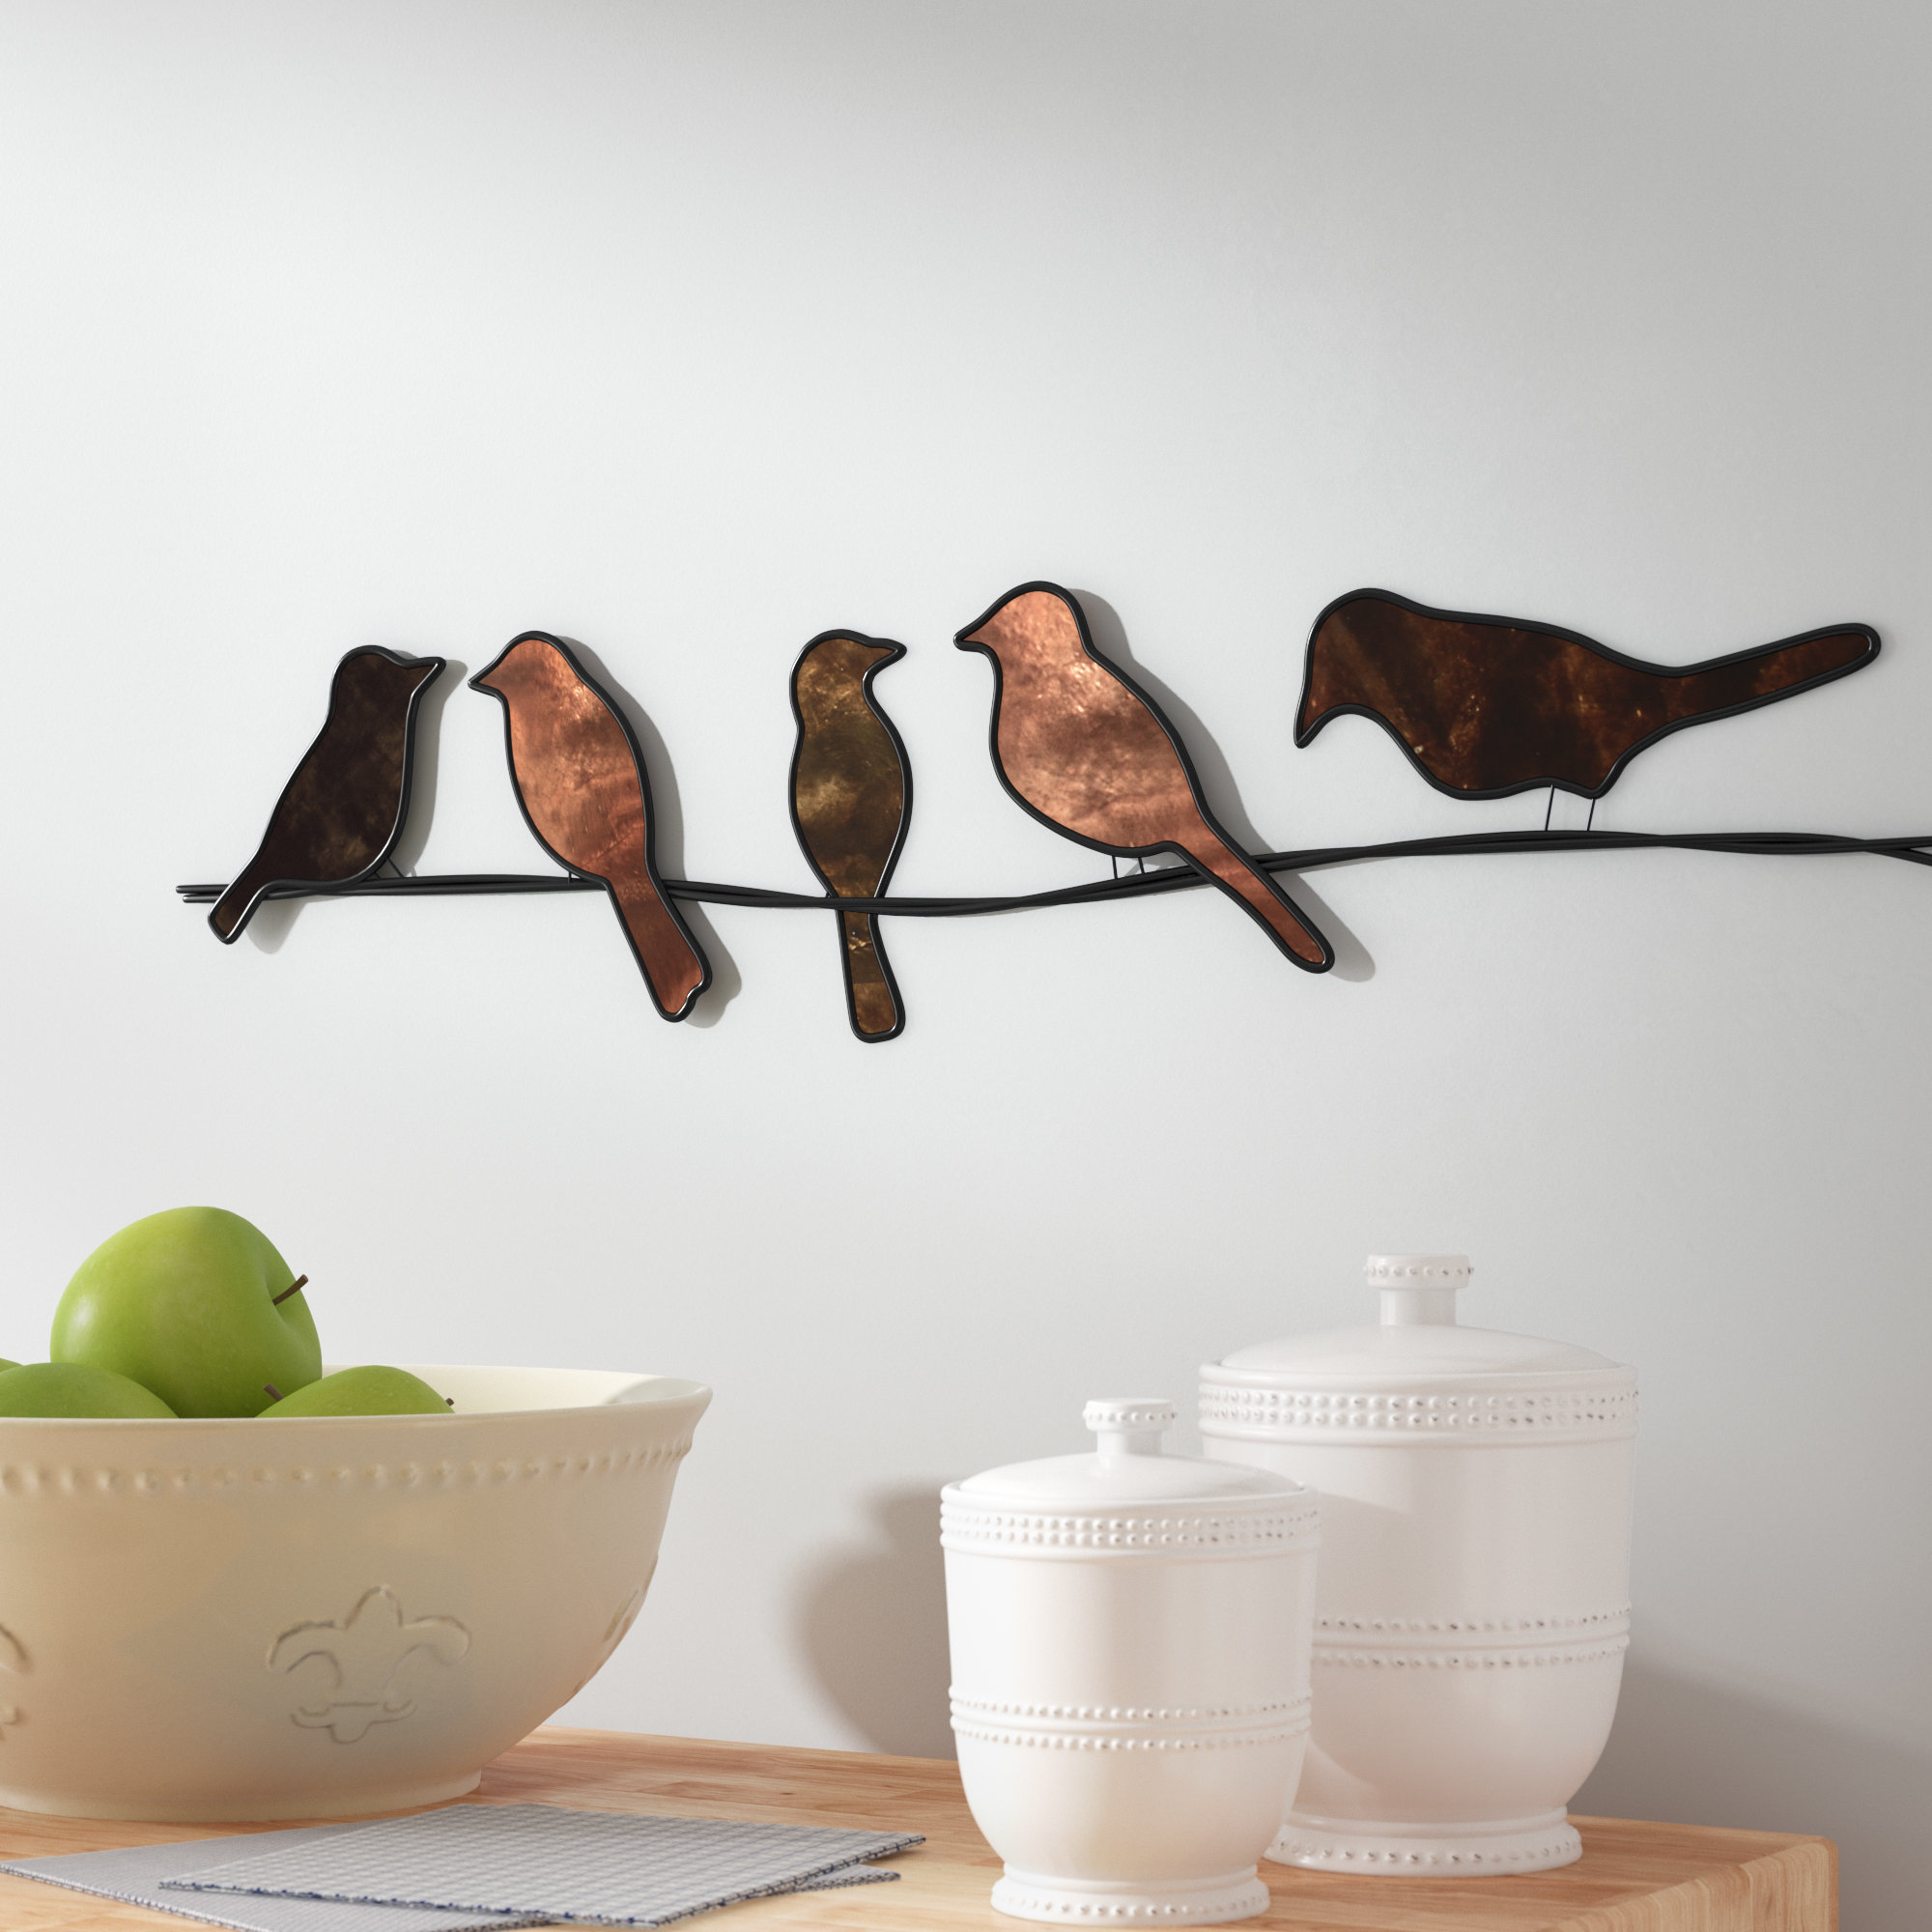 Wayfair Intended For Rioux Birds On A Wire Wall Decor (View 18 of 20)